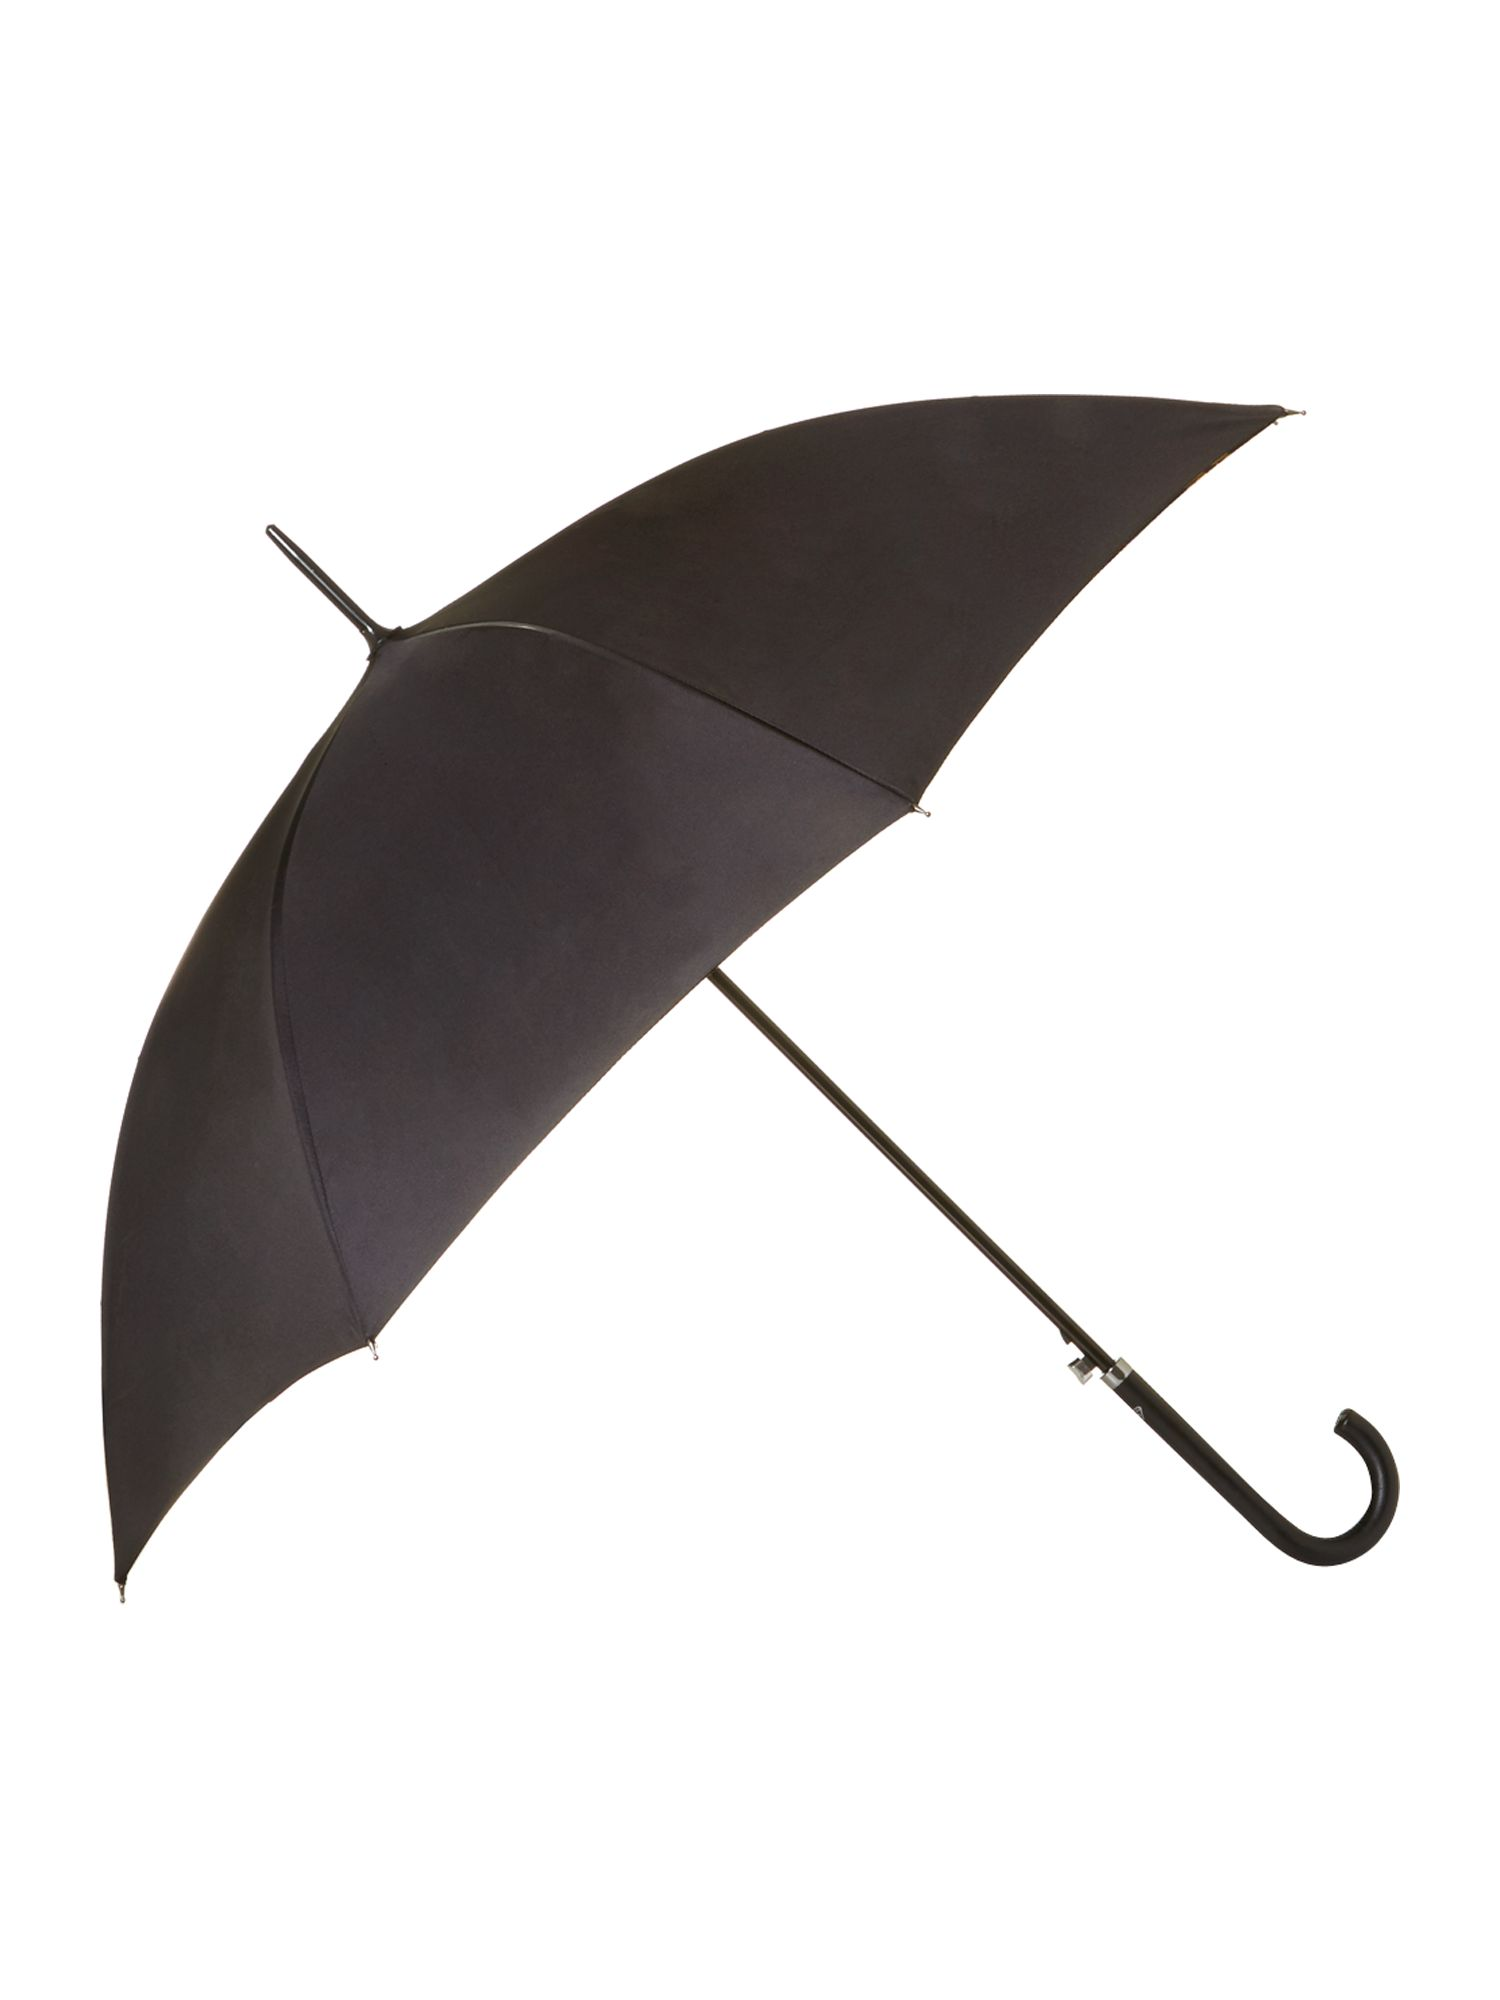 Bloomsbury meadow floral umbrella